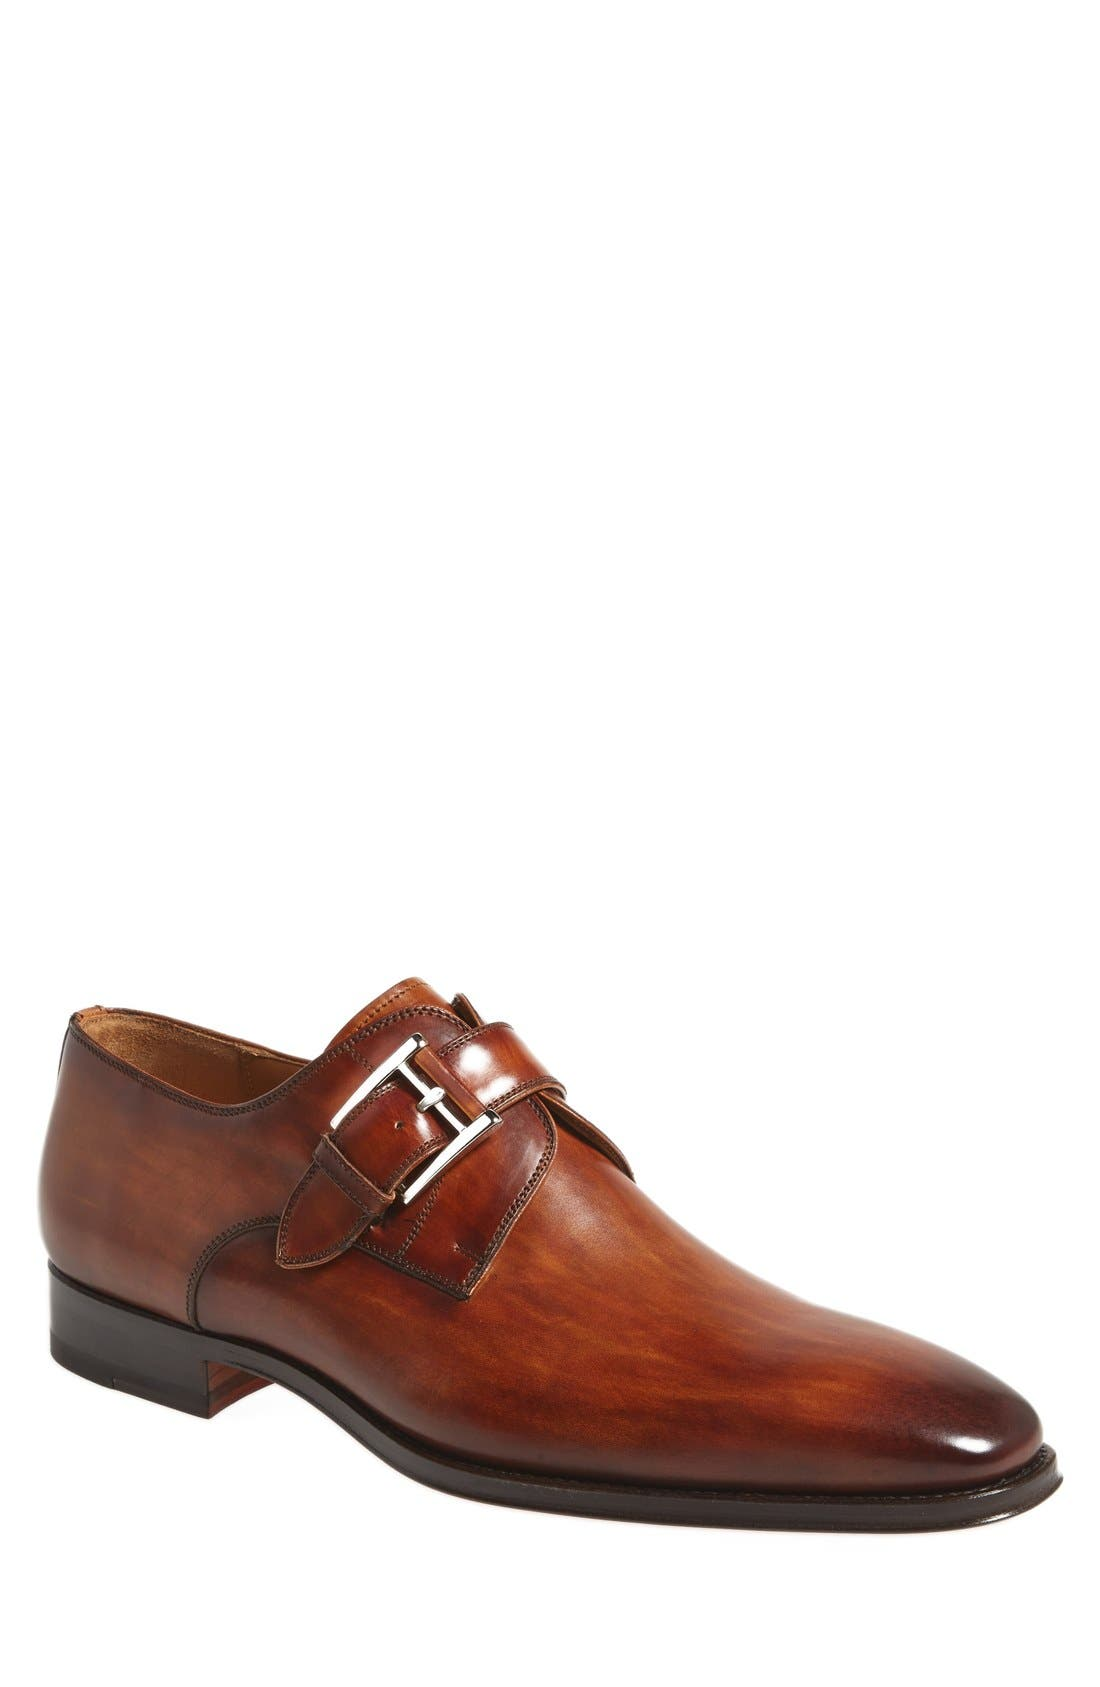 BallyPluthon Tassel Reverse Goodyear Leather Loafers sN5A2l8